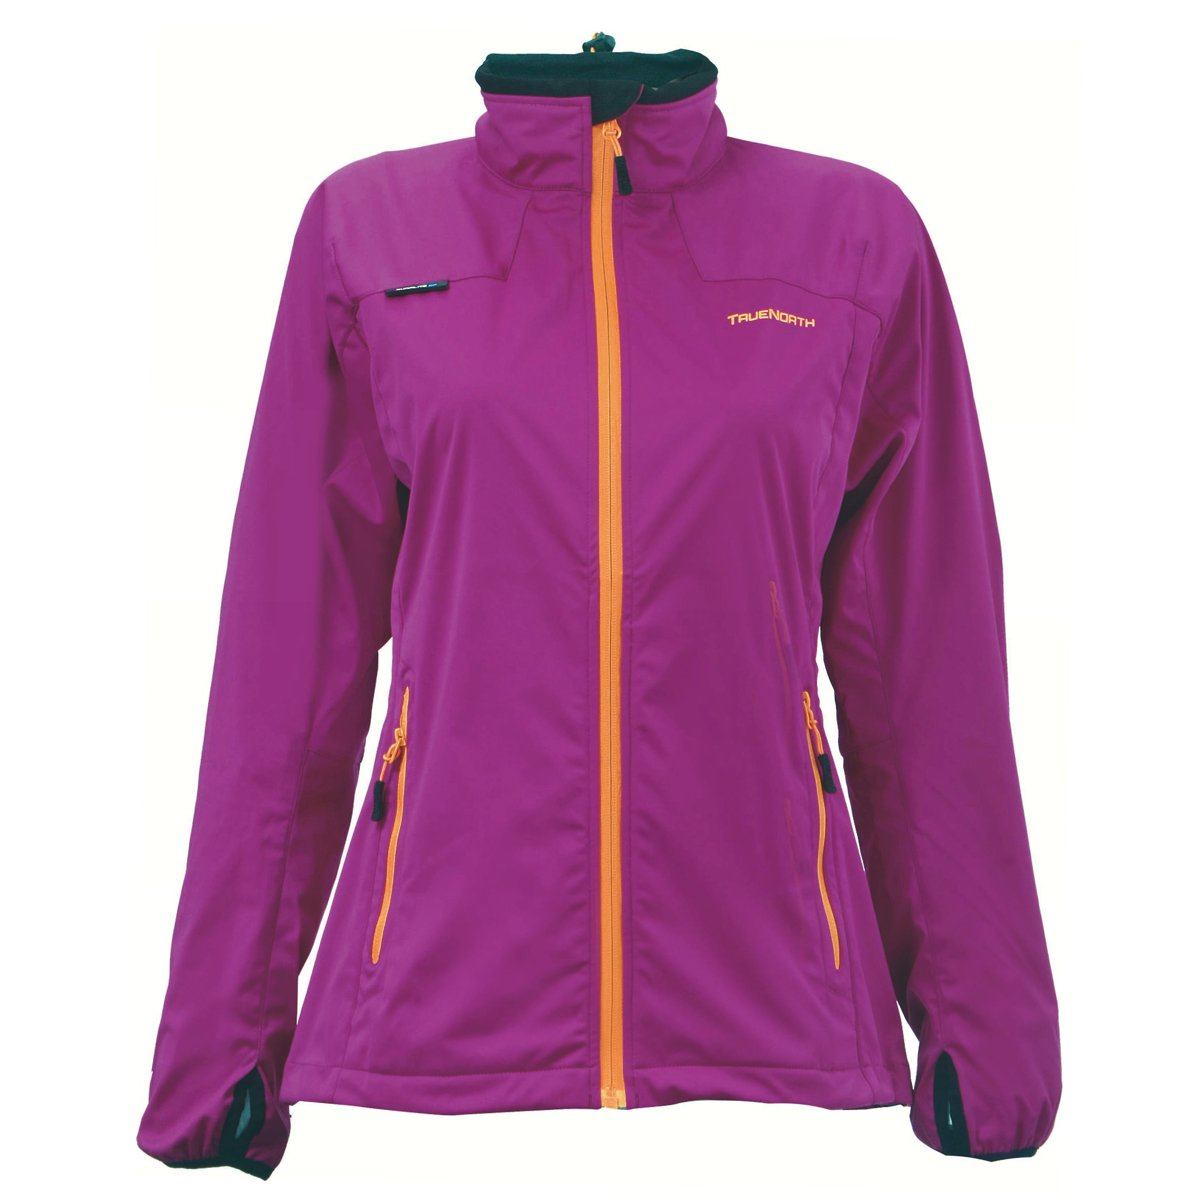 TRUENORTH RAINBOW SOFTSHELL JACKET 12/13 Damen Softshell Jacke 7.000mm 7912410